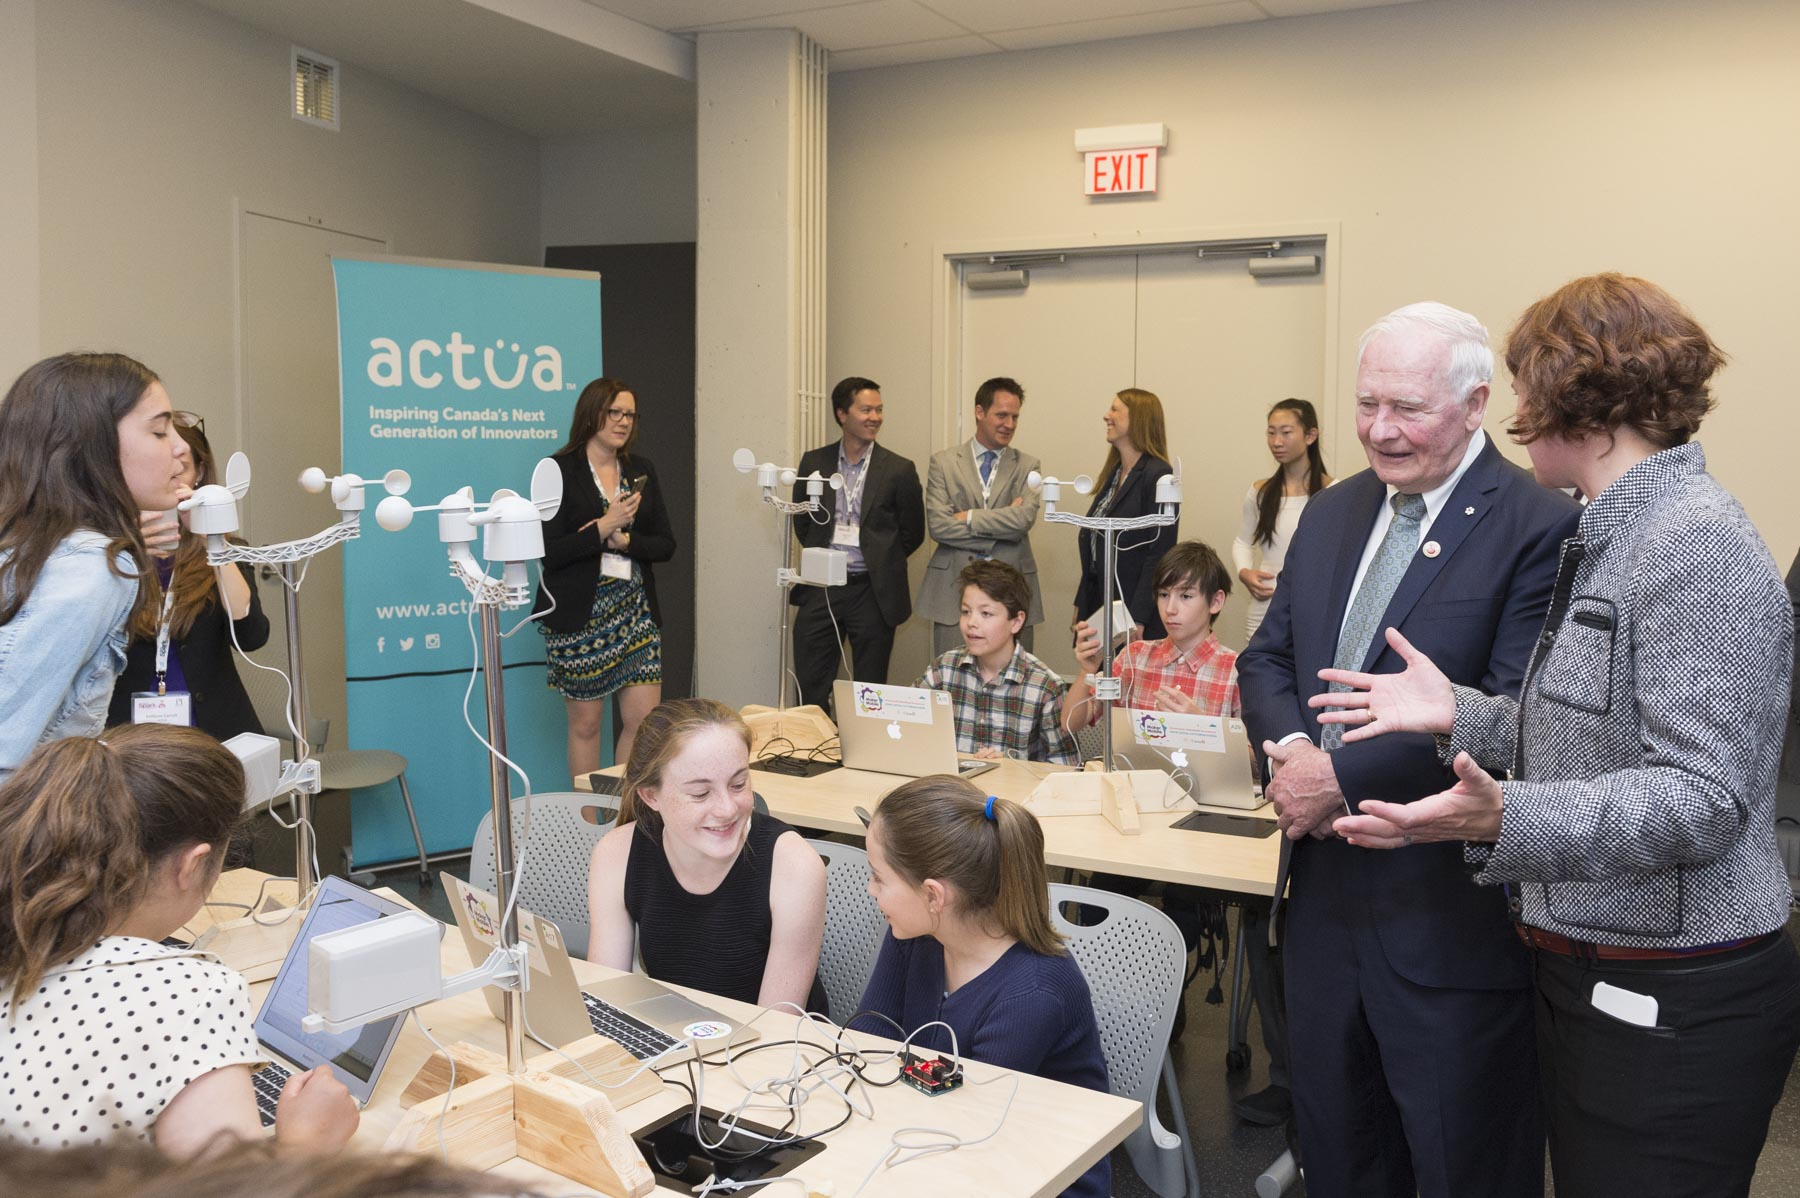 The experience includes an inspirational presentation from the Perimeter Institute as well as a Maker Mobile from Actua.